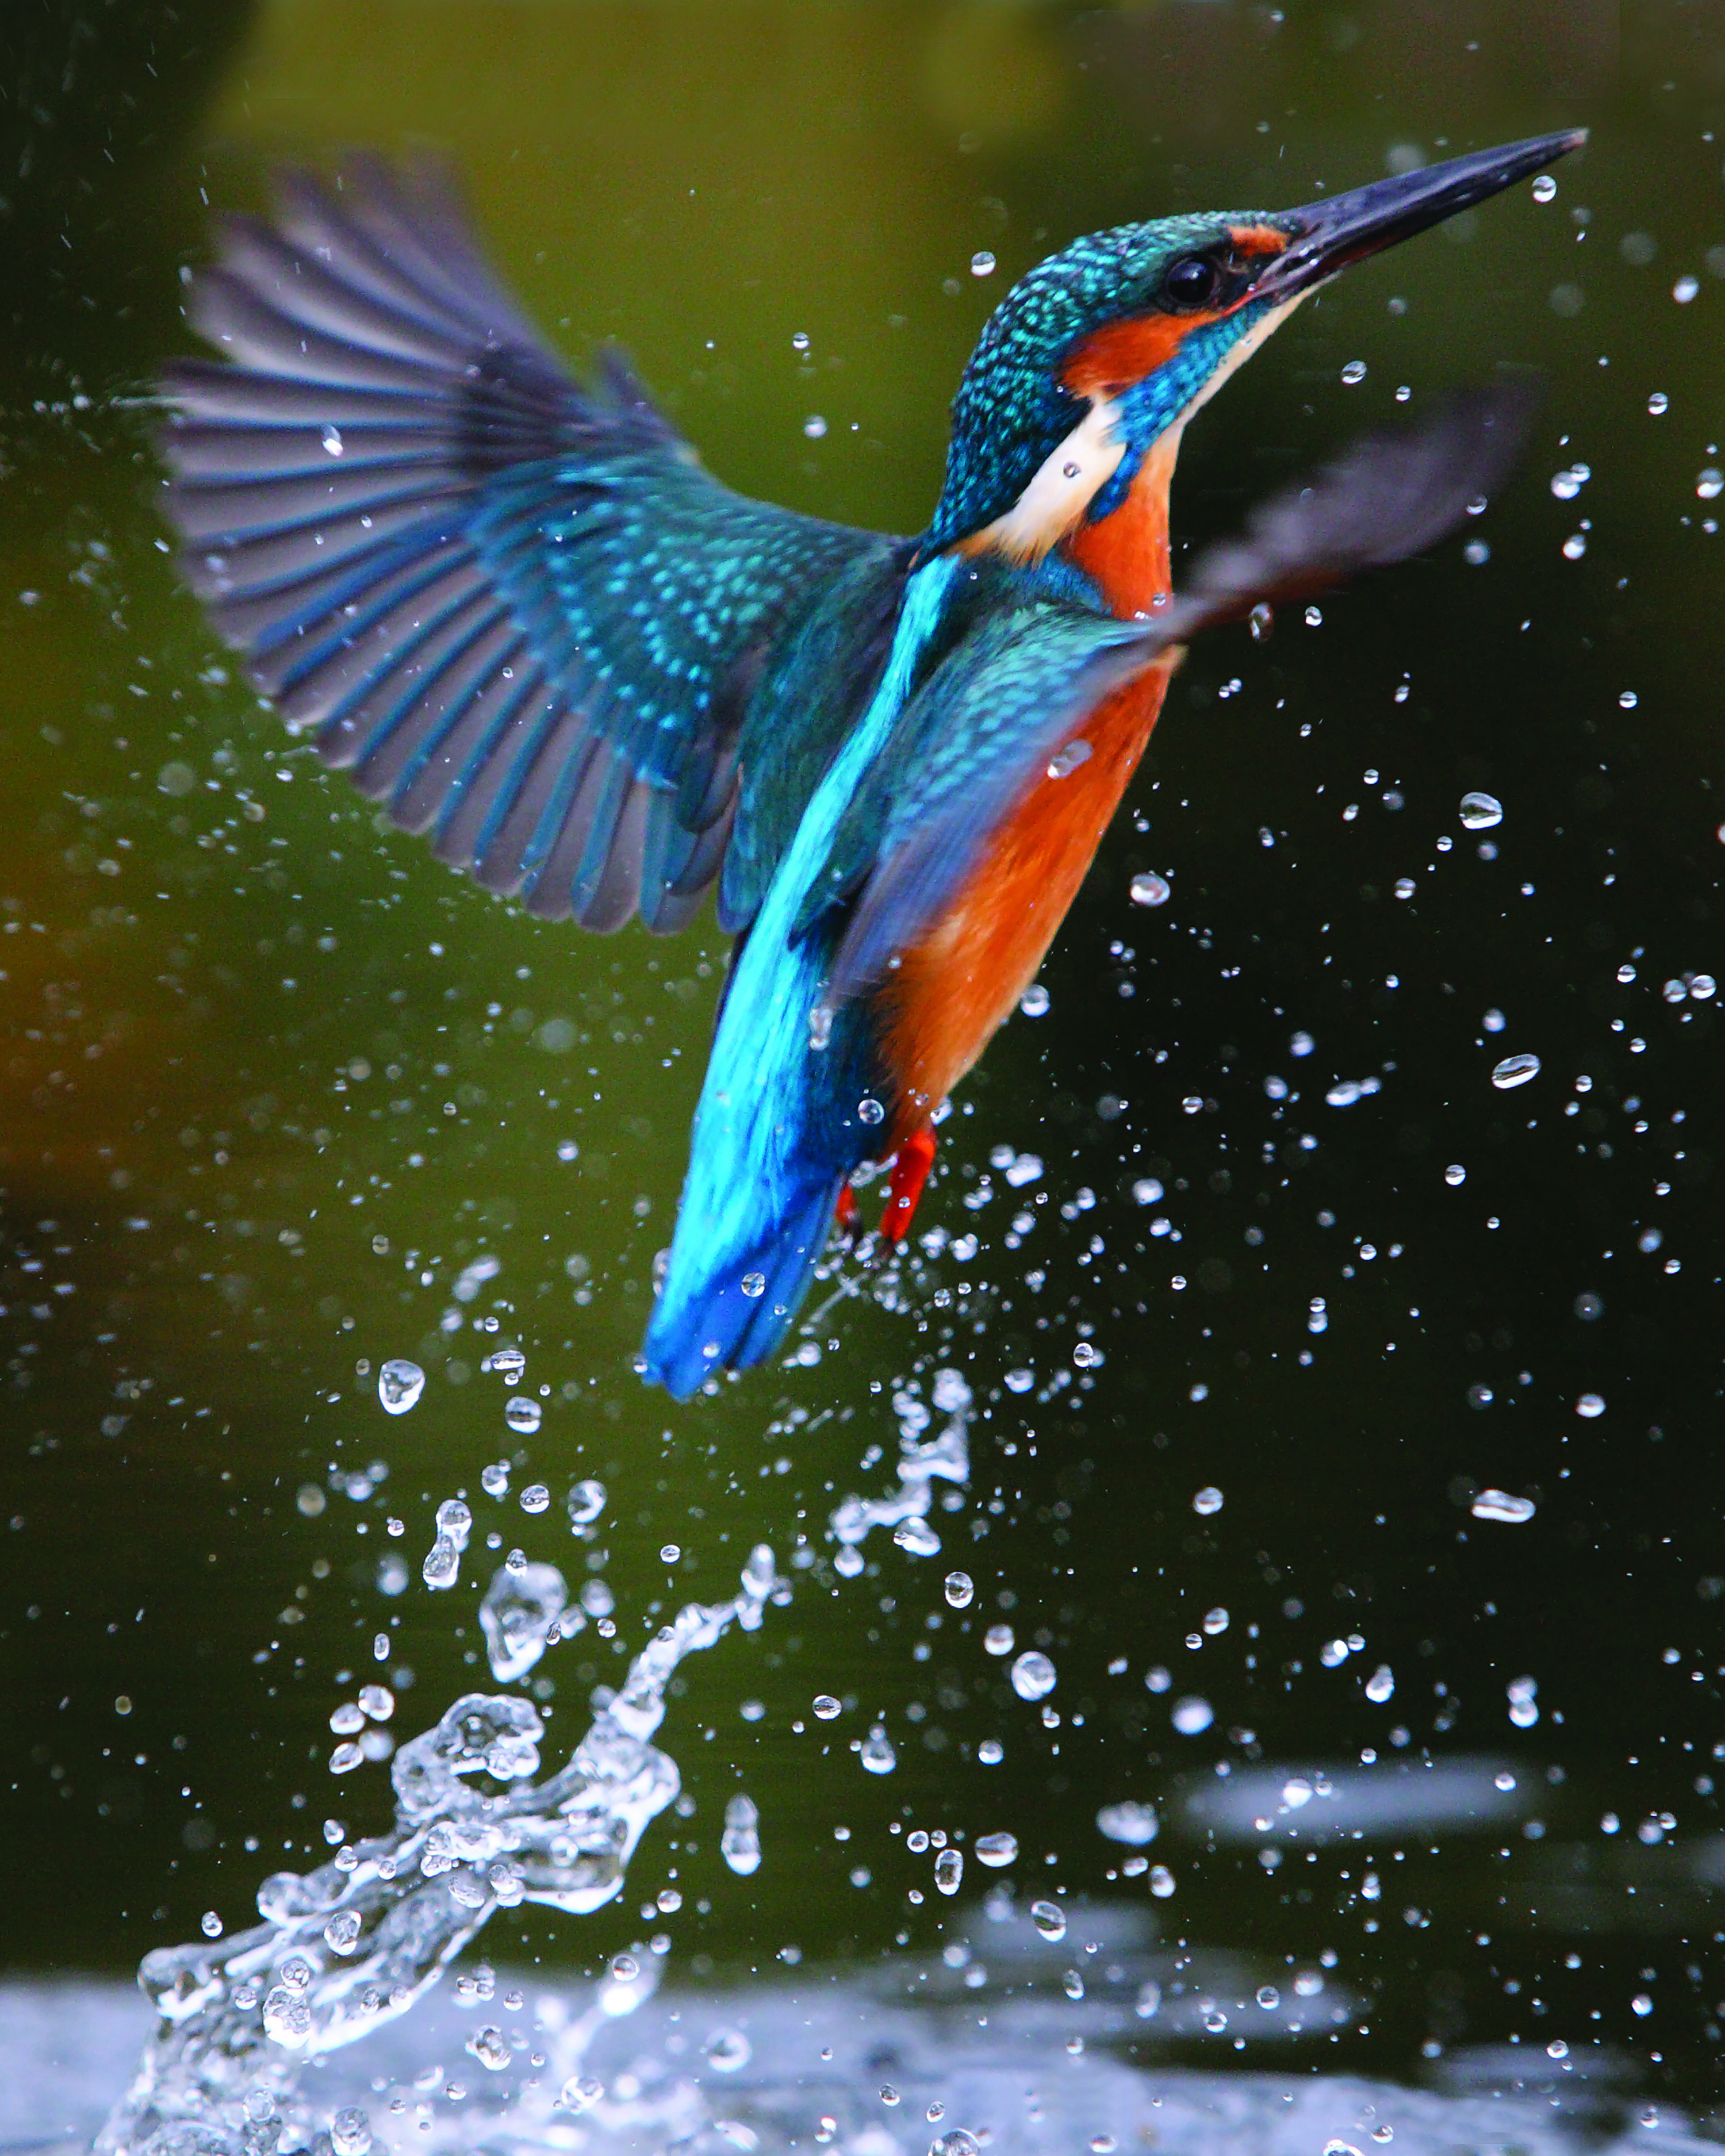 The kingfisher tears upstream! Pic credit: Laurie Campbell.